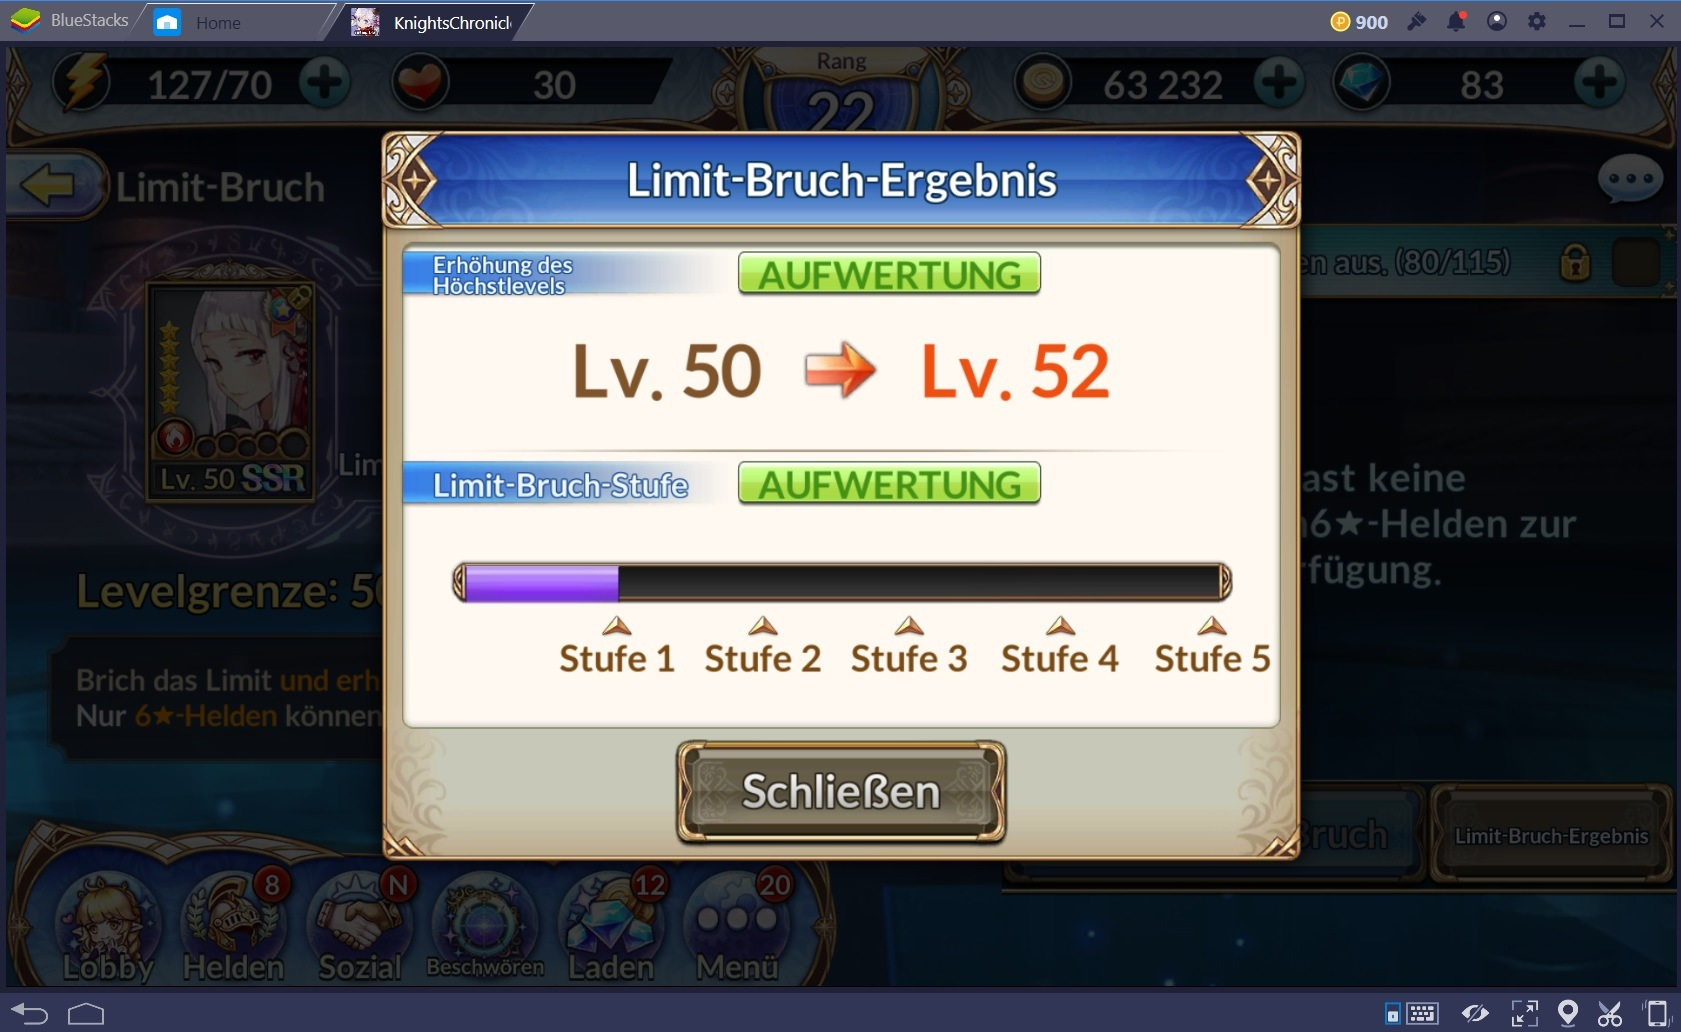 Knights Chronicle Levelguide